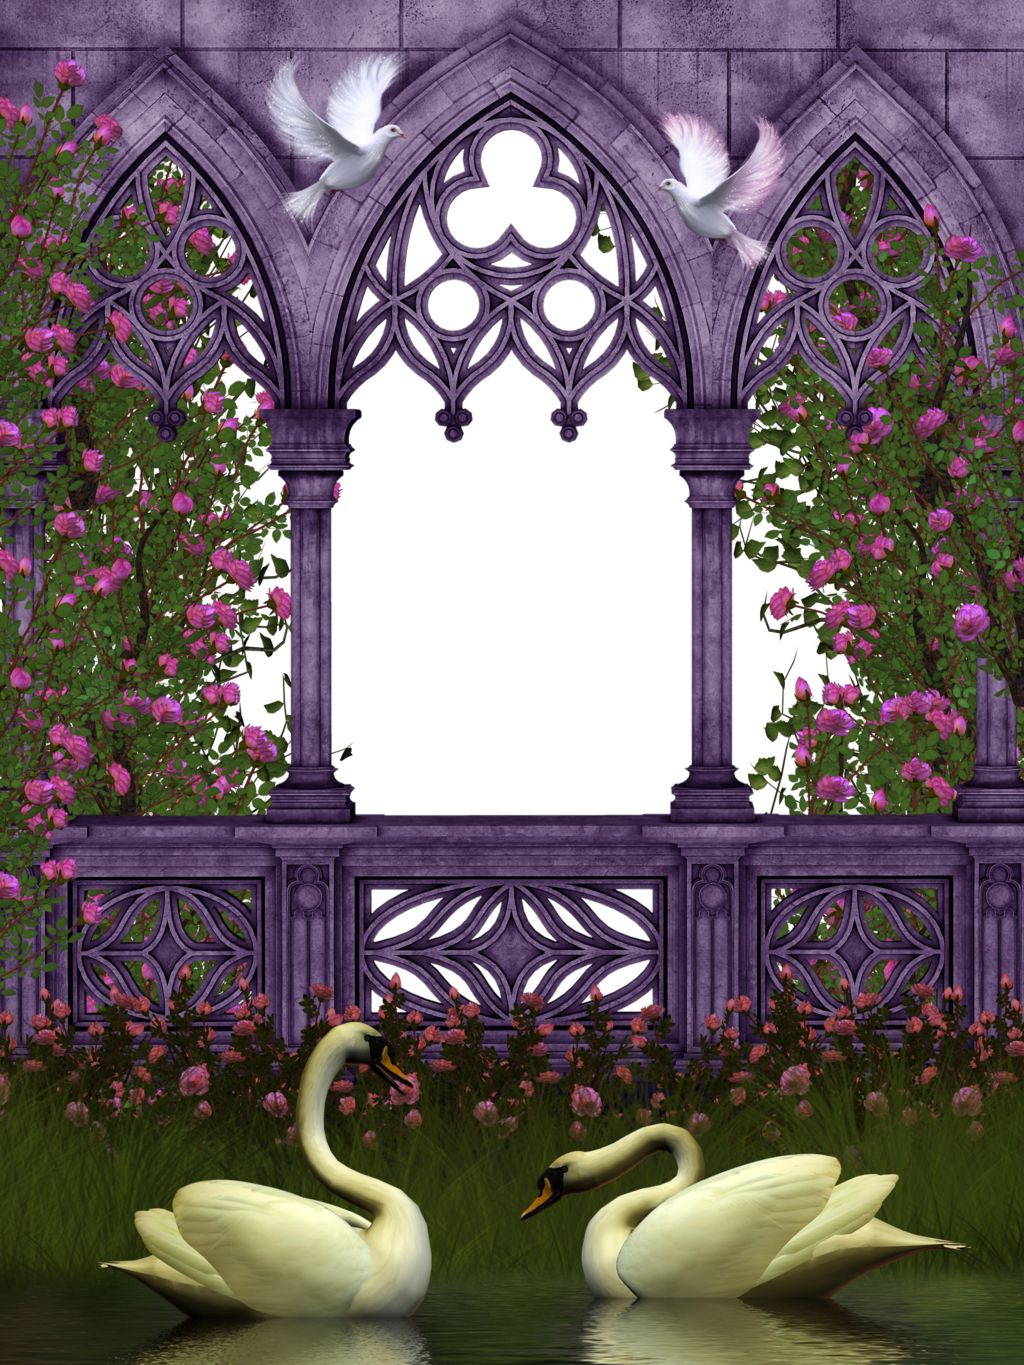 Vines clipart archway. Rose garden by collect